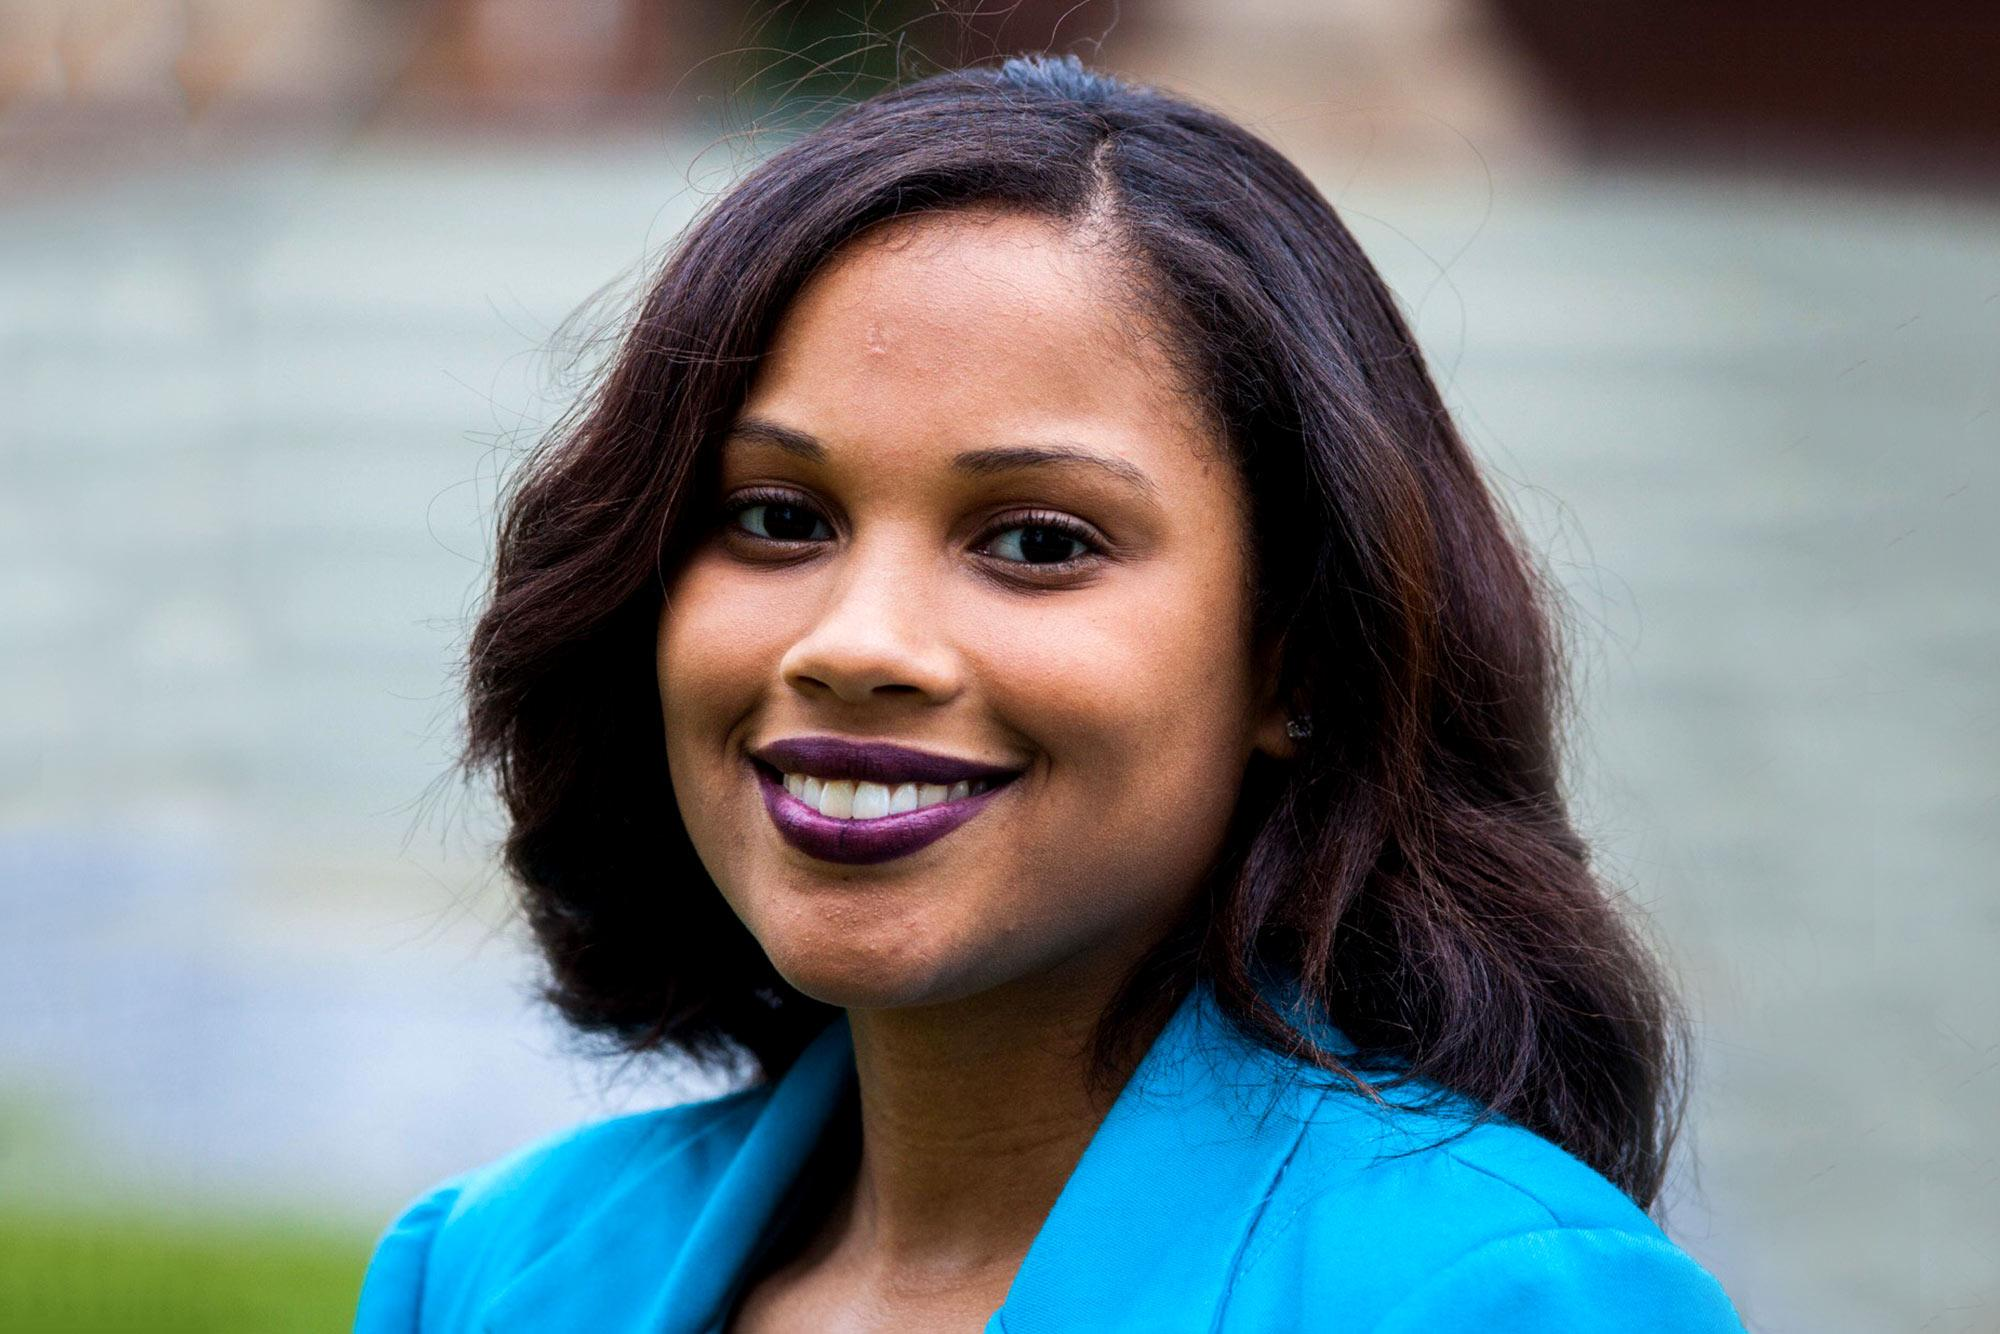 Bowles is a 2014 alumna and one of the youngest elected officials in the state.